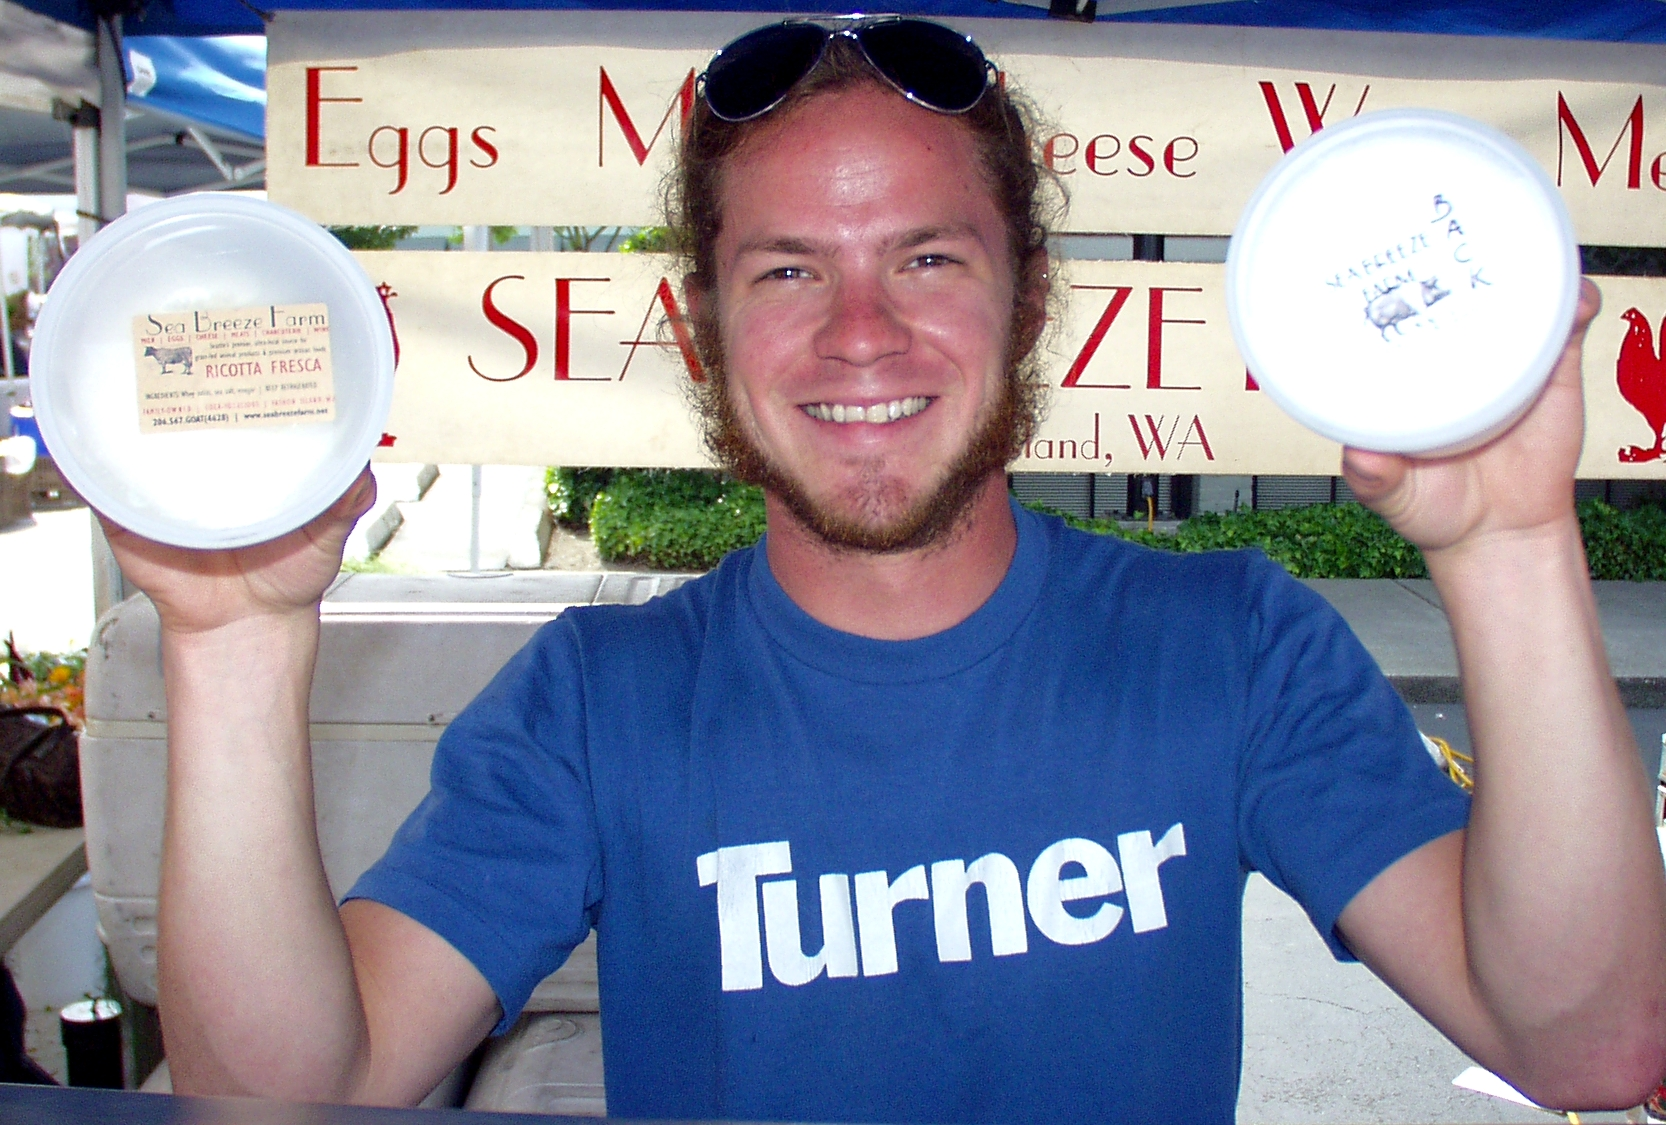 Visit John at Sea Breeze Farm's refer case to see why he's smiling. Photo copyright 2009 by Zachary D. Lyons.